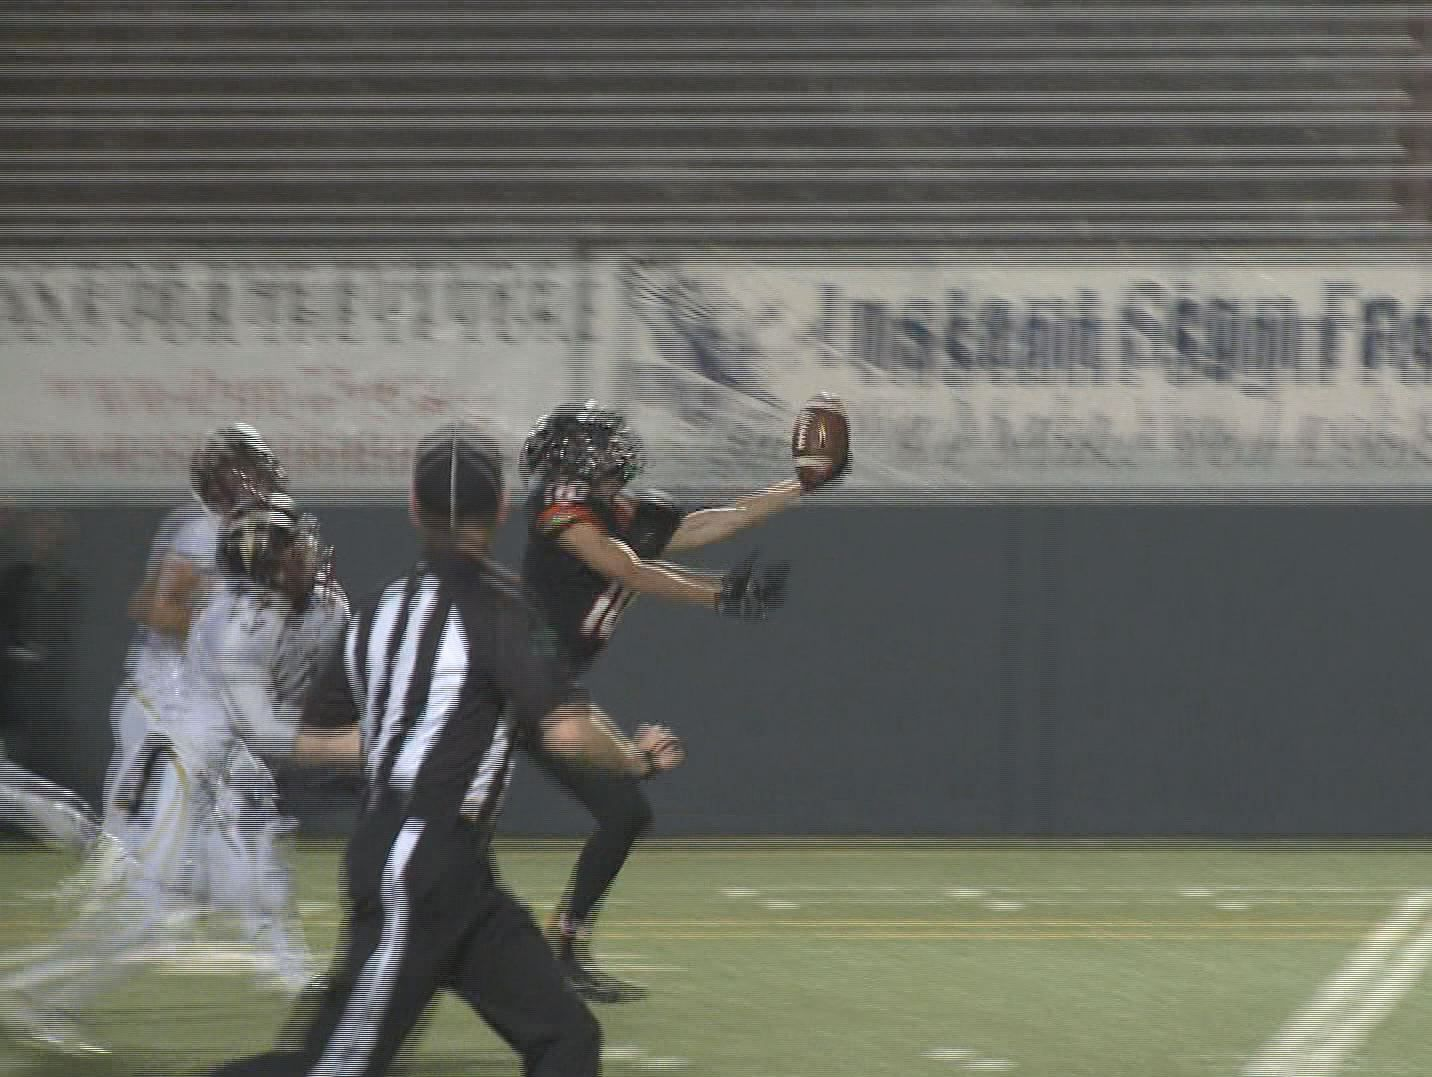 Leo Haghighi of Lewis and Clark makes an incredible one-handed catch at Joe Albi Stadium against University. The Tigers beat the Titans 24-21.